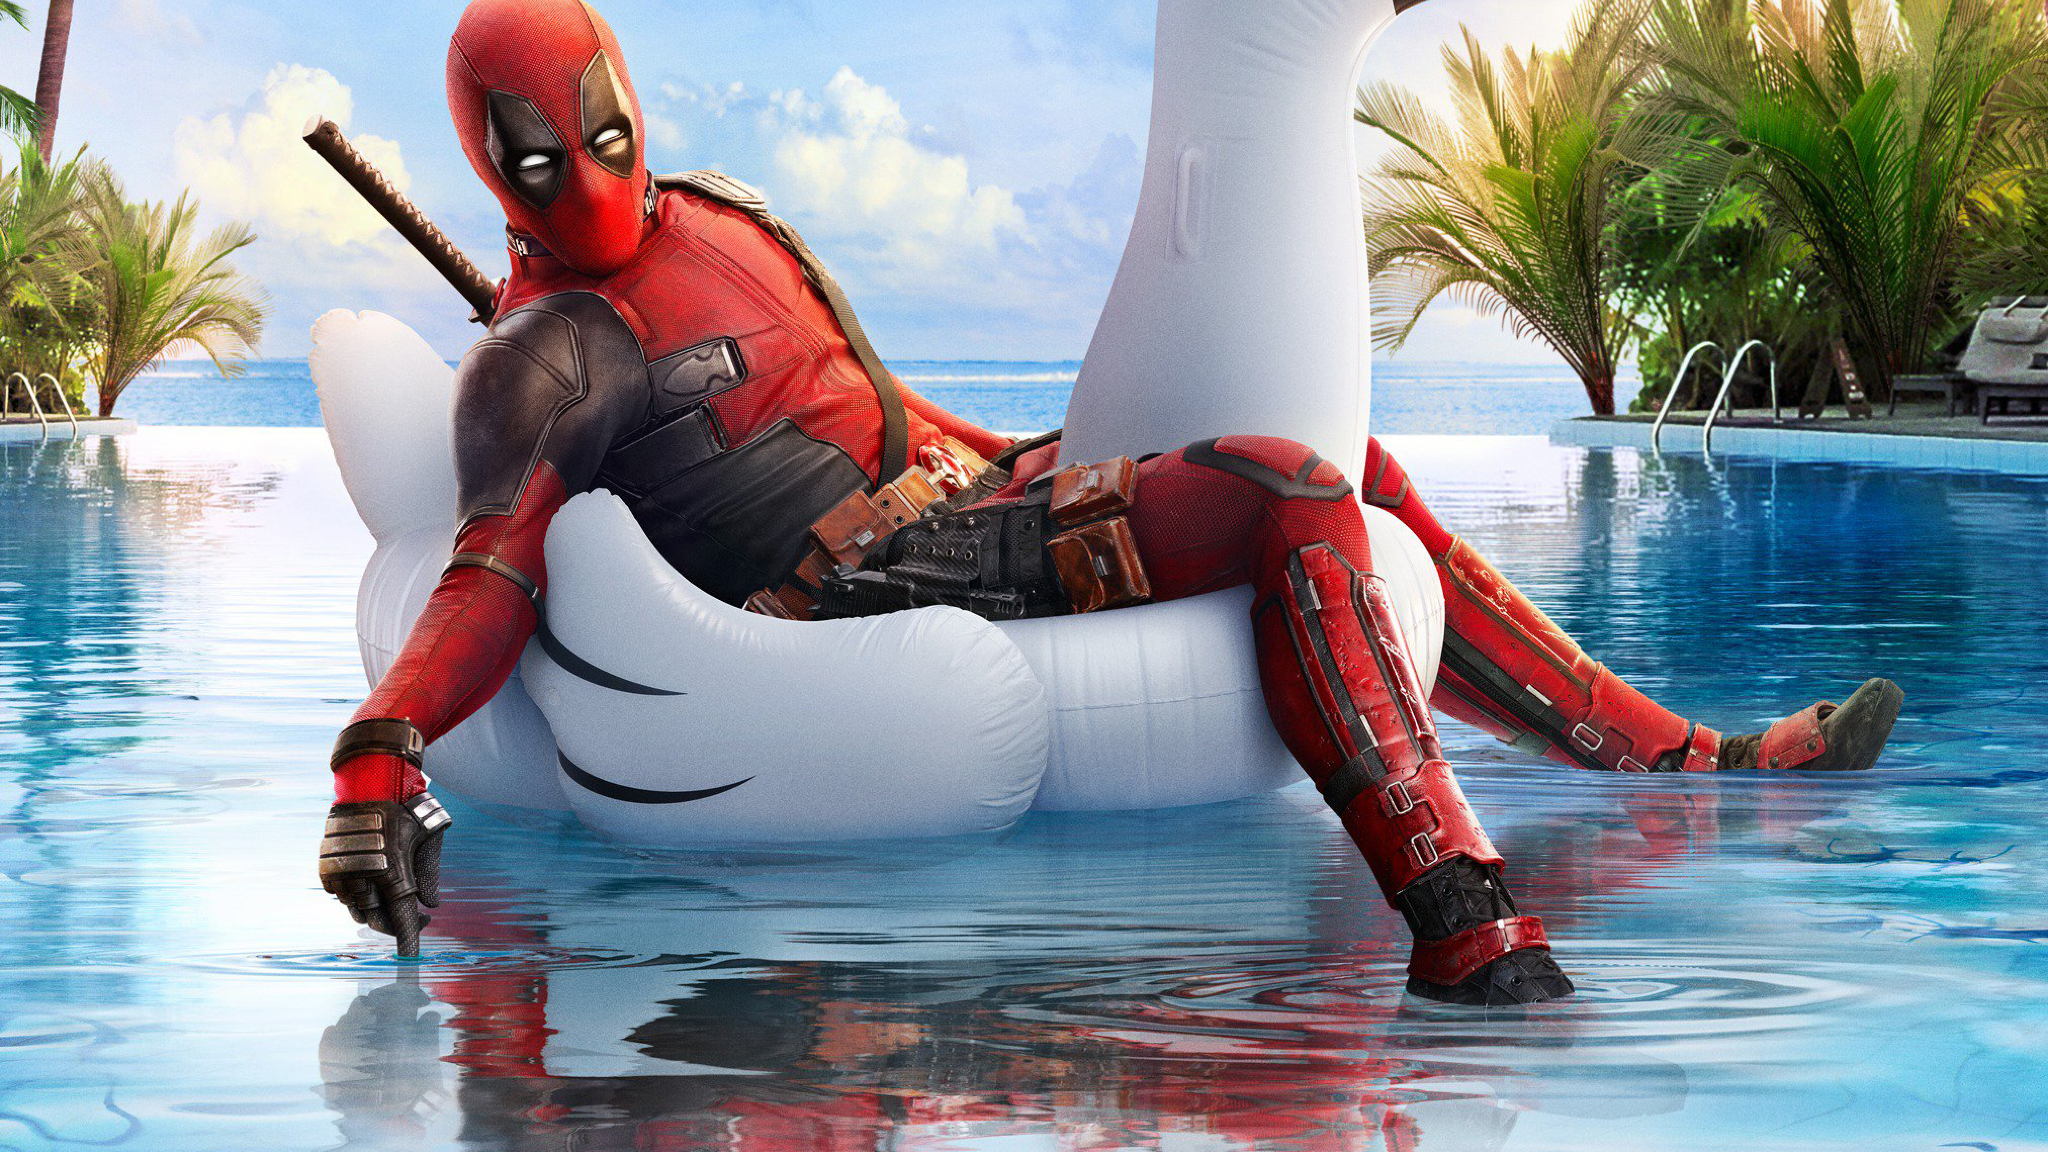 Best Dual Sport >> Deadpool 2 Funny Poster, Full HD 2K Wallpaper